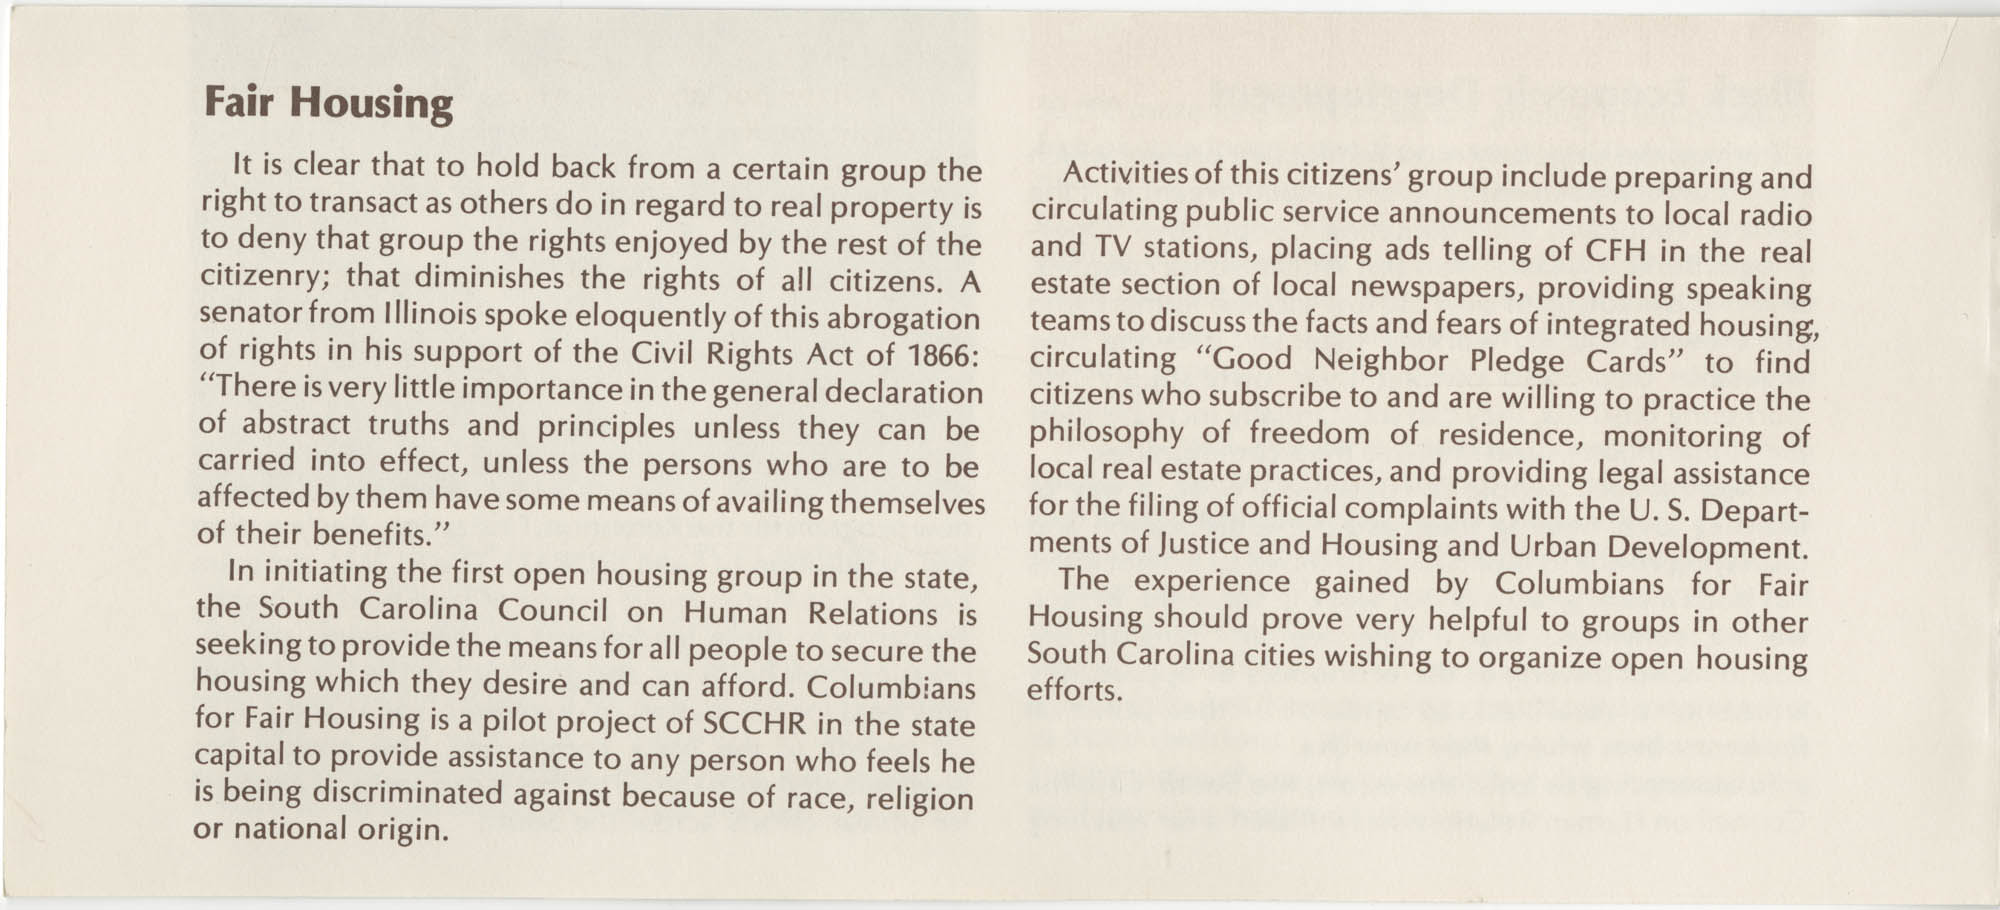 South Carolina Council on Human Relations Pamphlet, Page 9